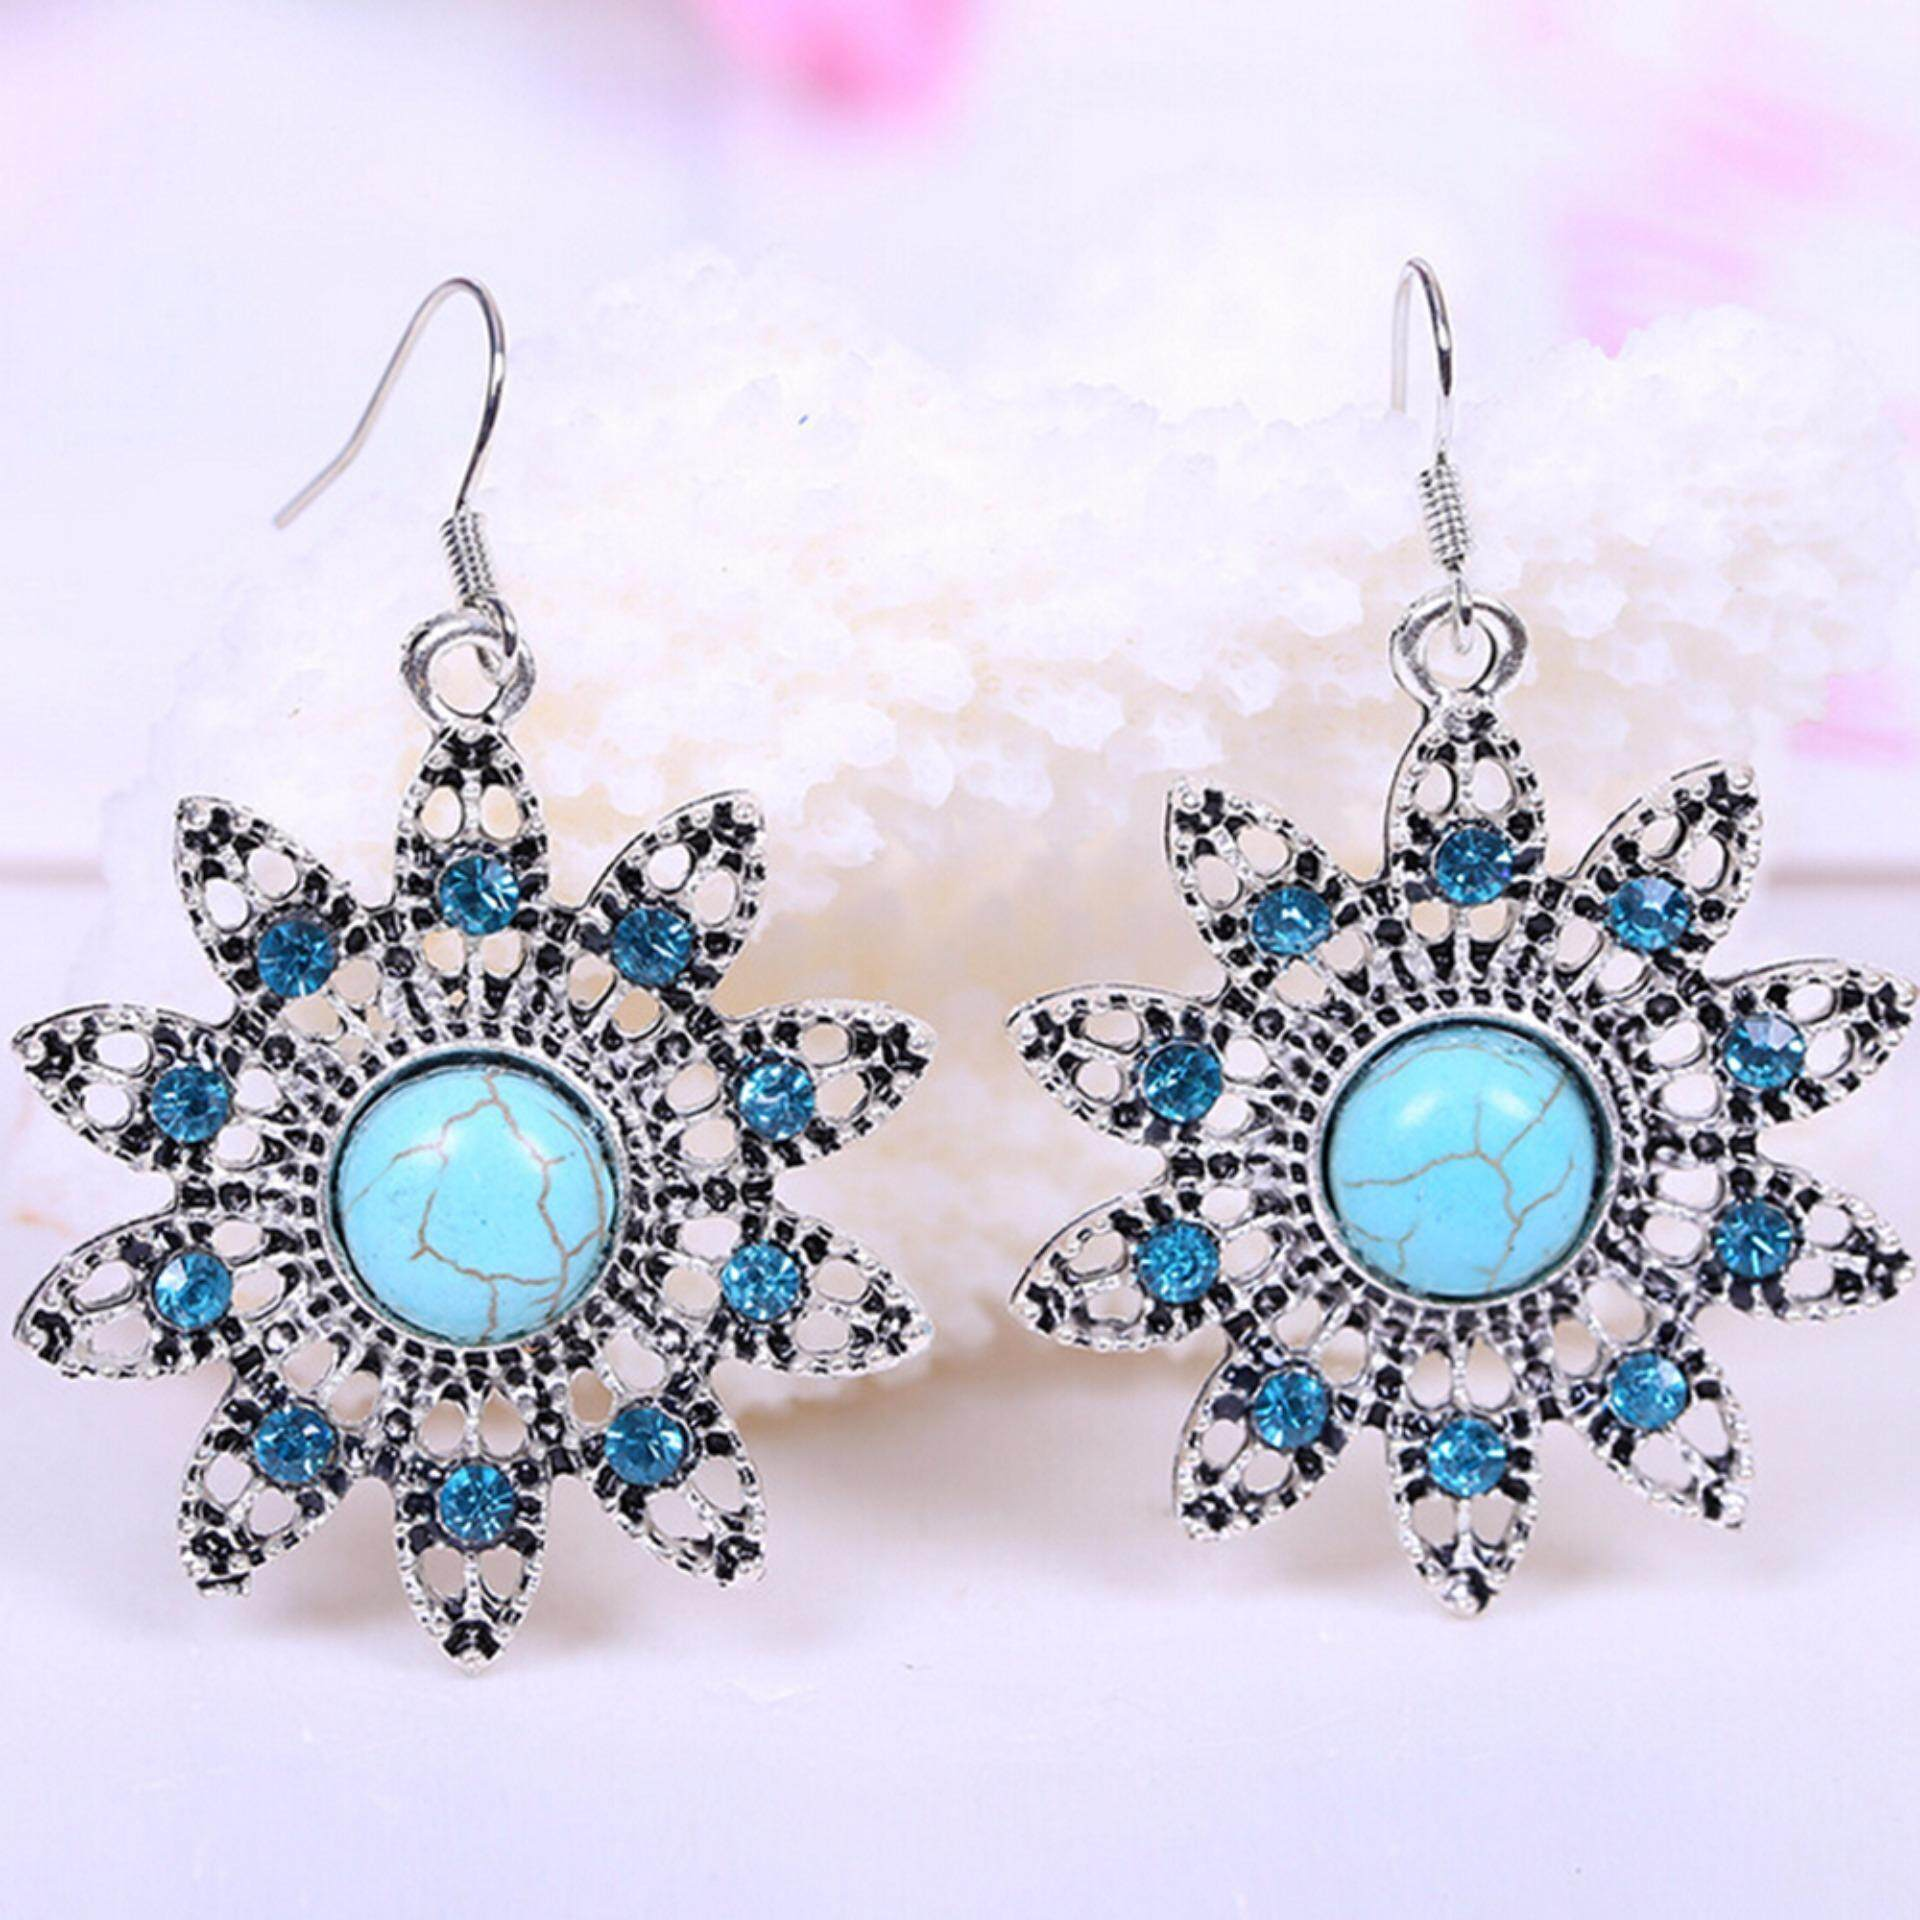 Hequ Online Shopping India Vintage Turquoise Drop Earrings Bohemia Peacock Hollow Rhinestone Brincos - intl